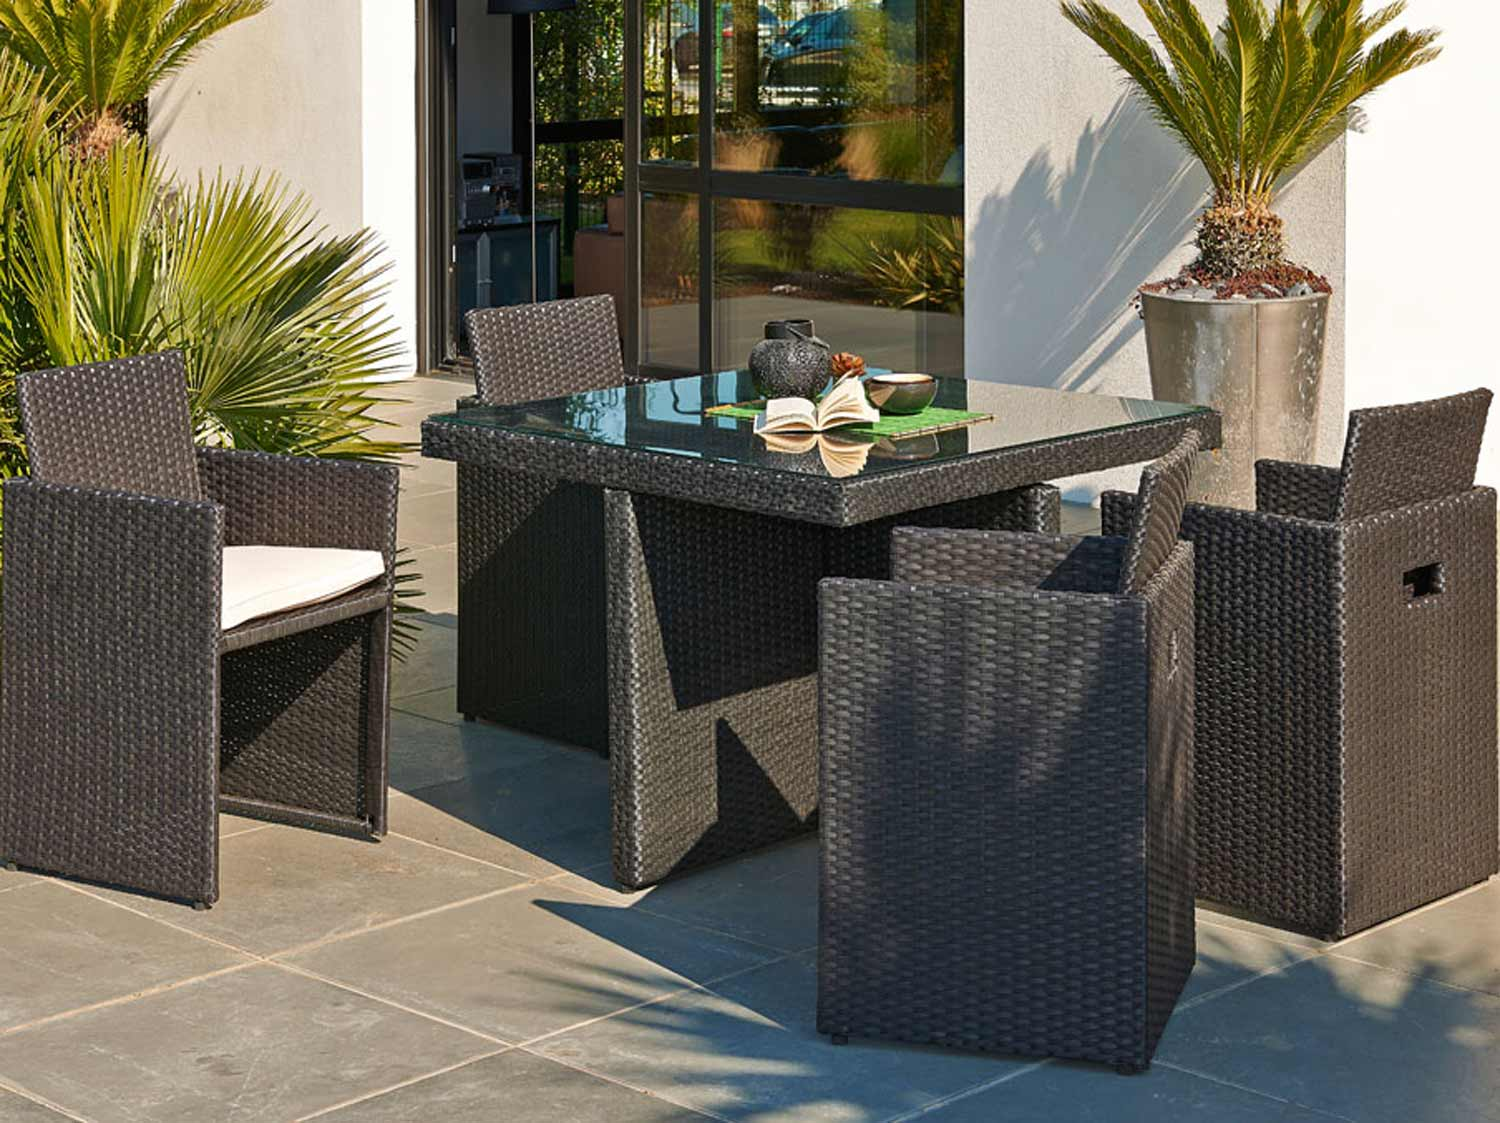 Emejing idee deco salon de jardin contemporary awesome for Deco salon de jardin